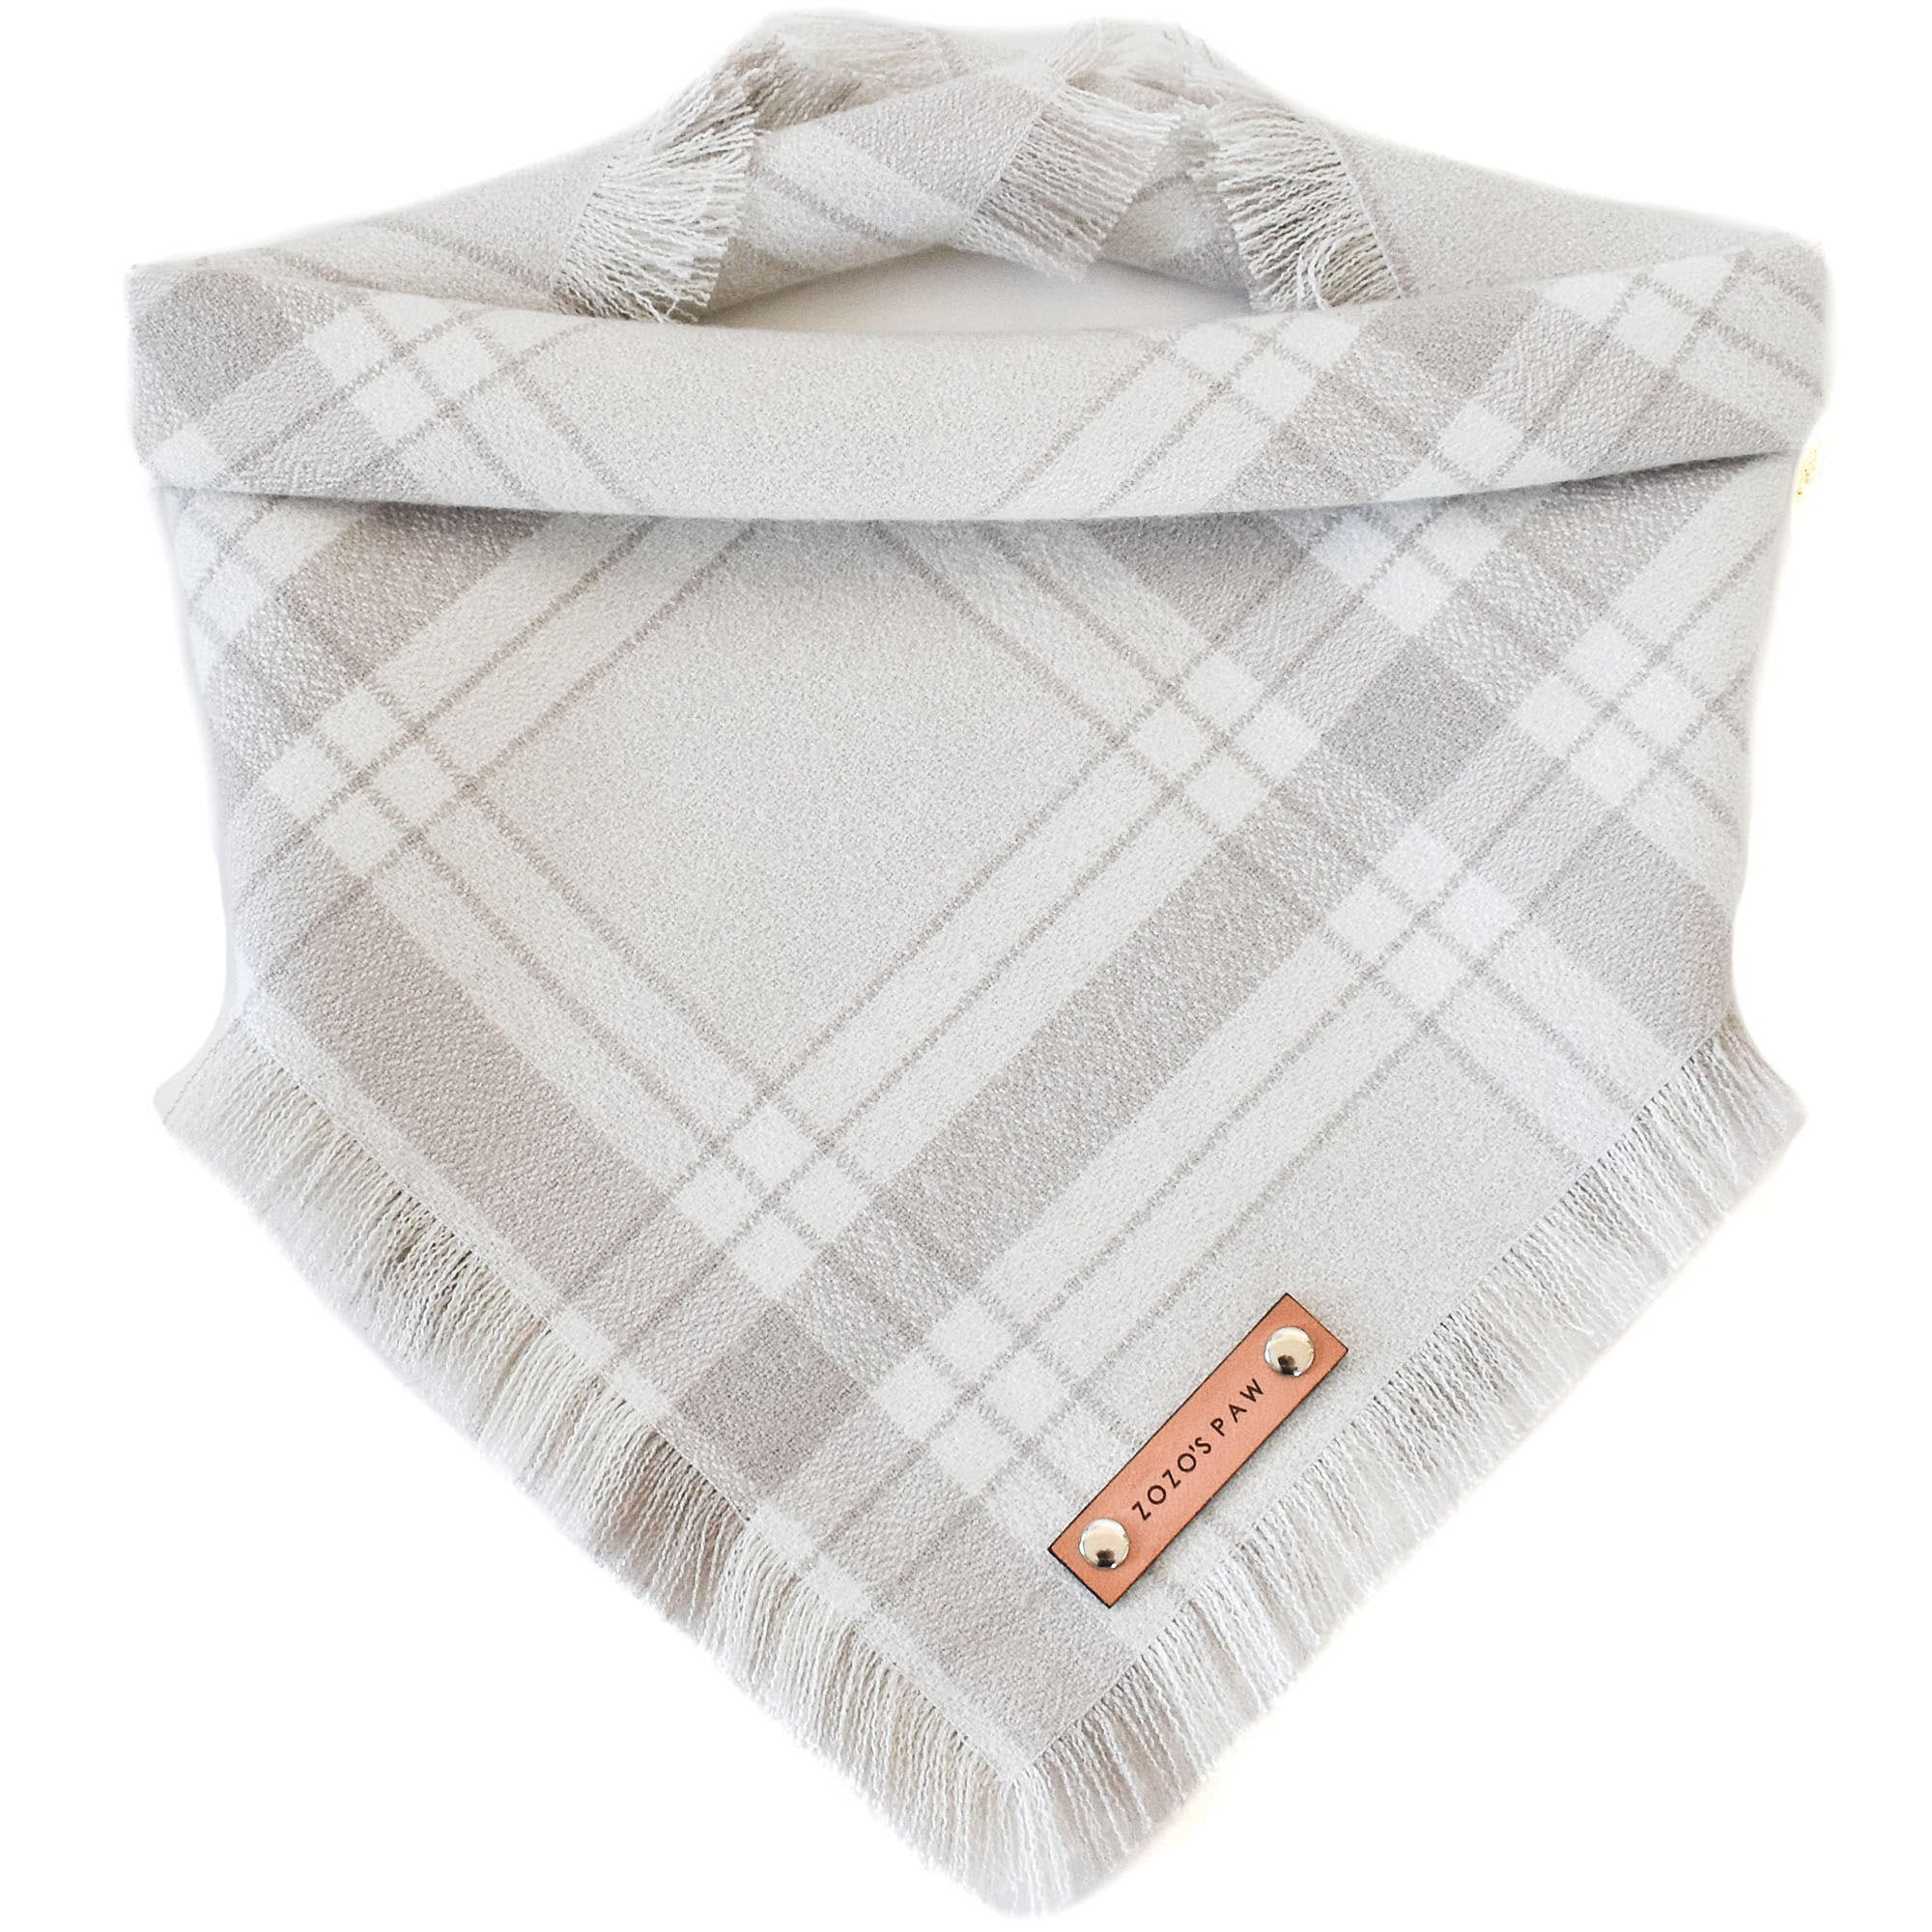 THE PEARL - Dog Flannel Fray Bandana